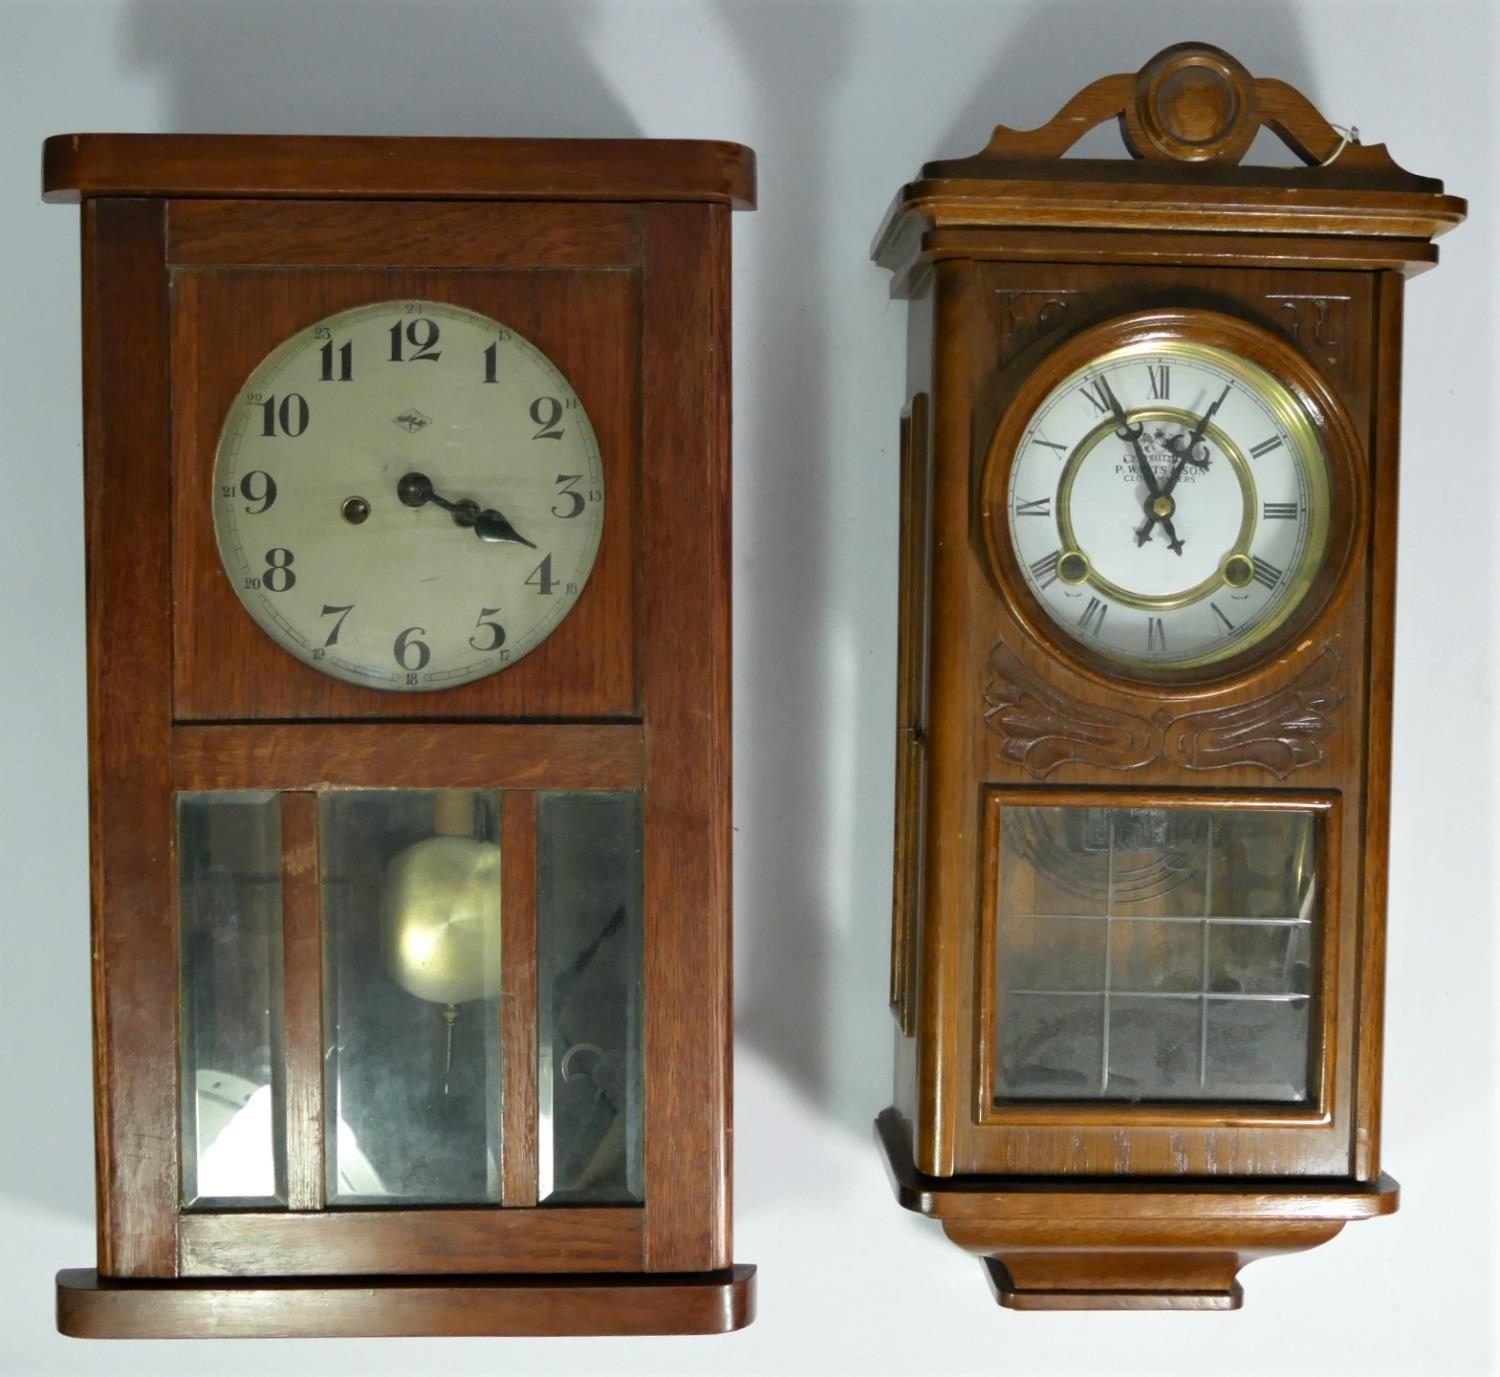 A collection of clocks to include, an Acctim 31 day wall clock, a Highlands 31 day wall clock, - Image 2 of 3